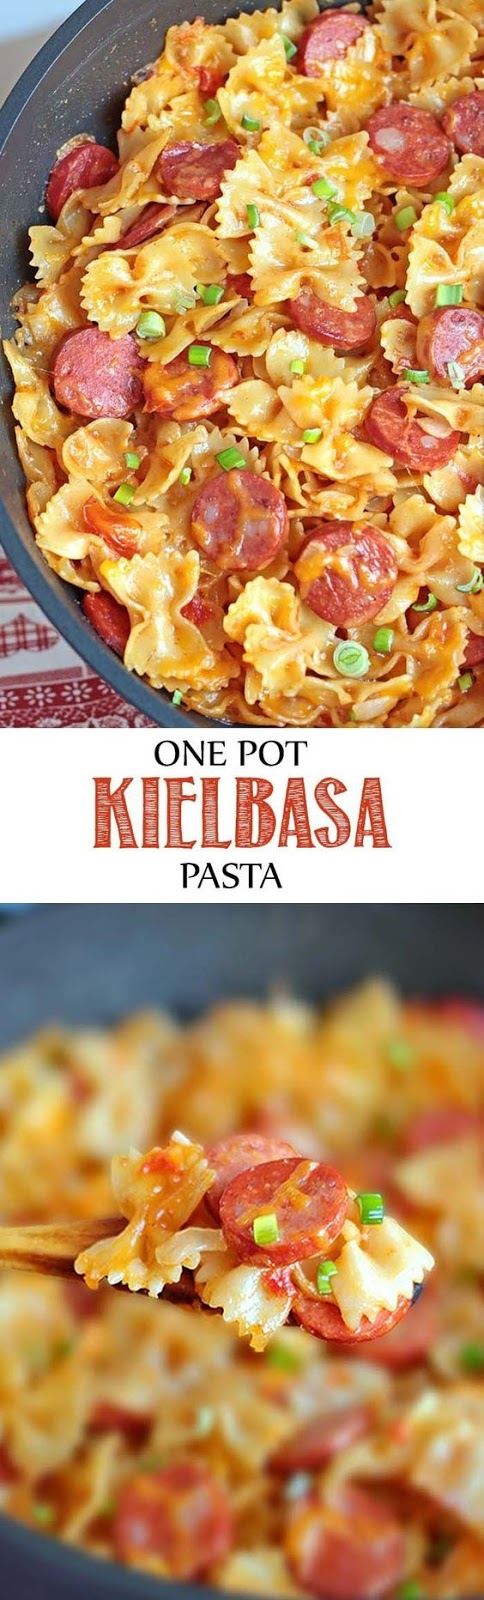 One Pot Kielbasa Pasta - Beef Recipes